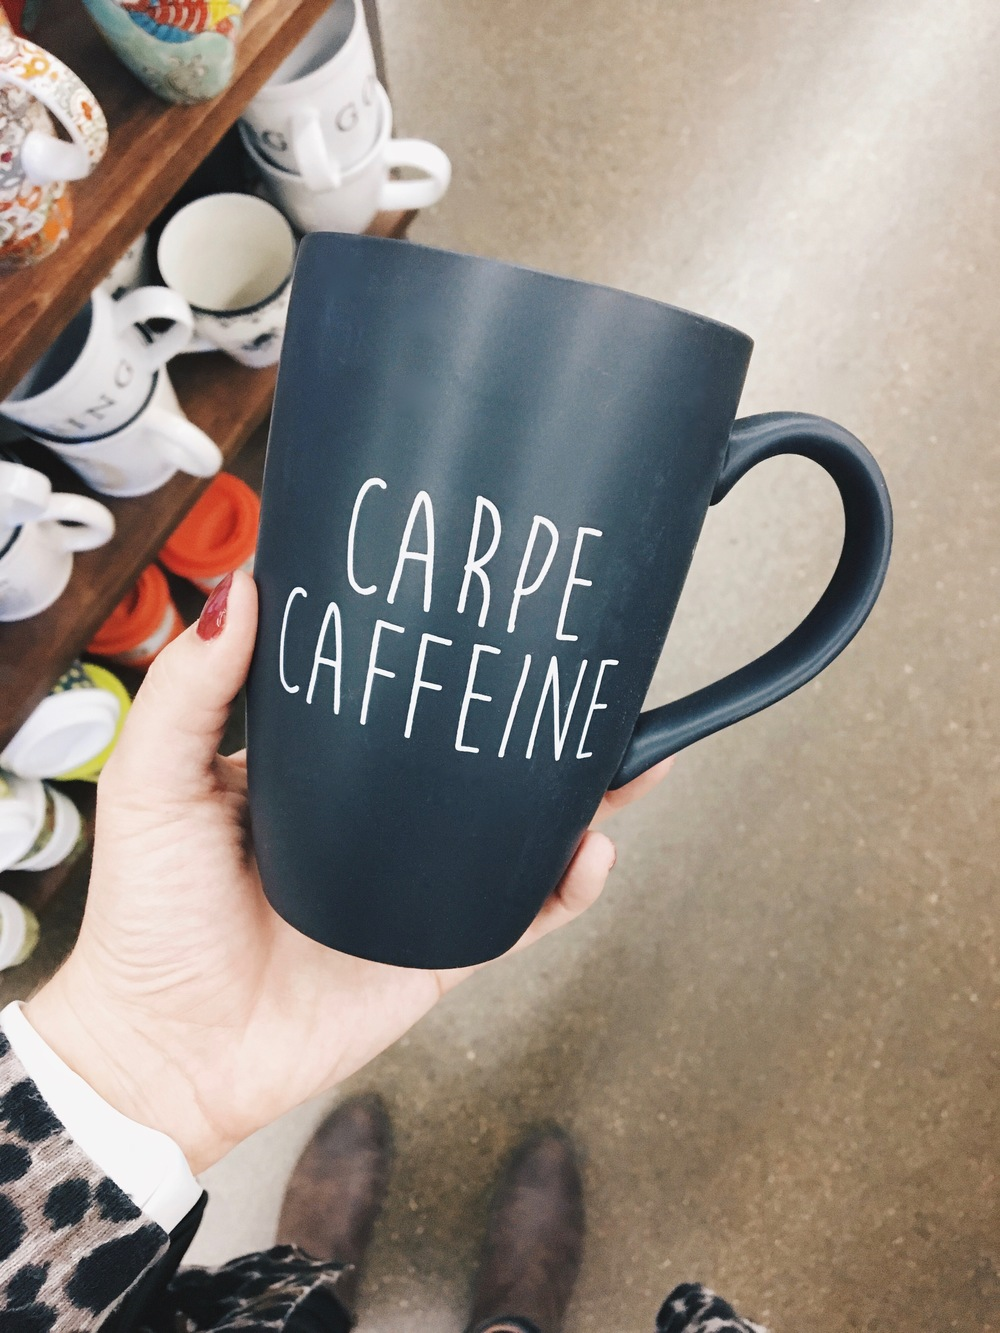 Carpe Caffeine Mug from World Market | #MugYOLO | ashleyjoanna.com